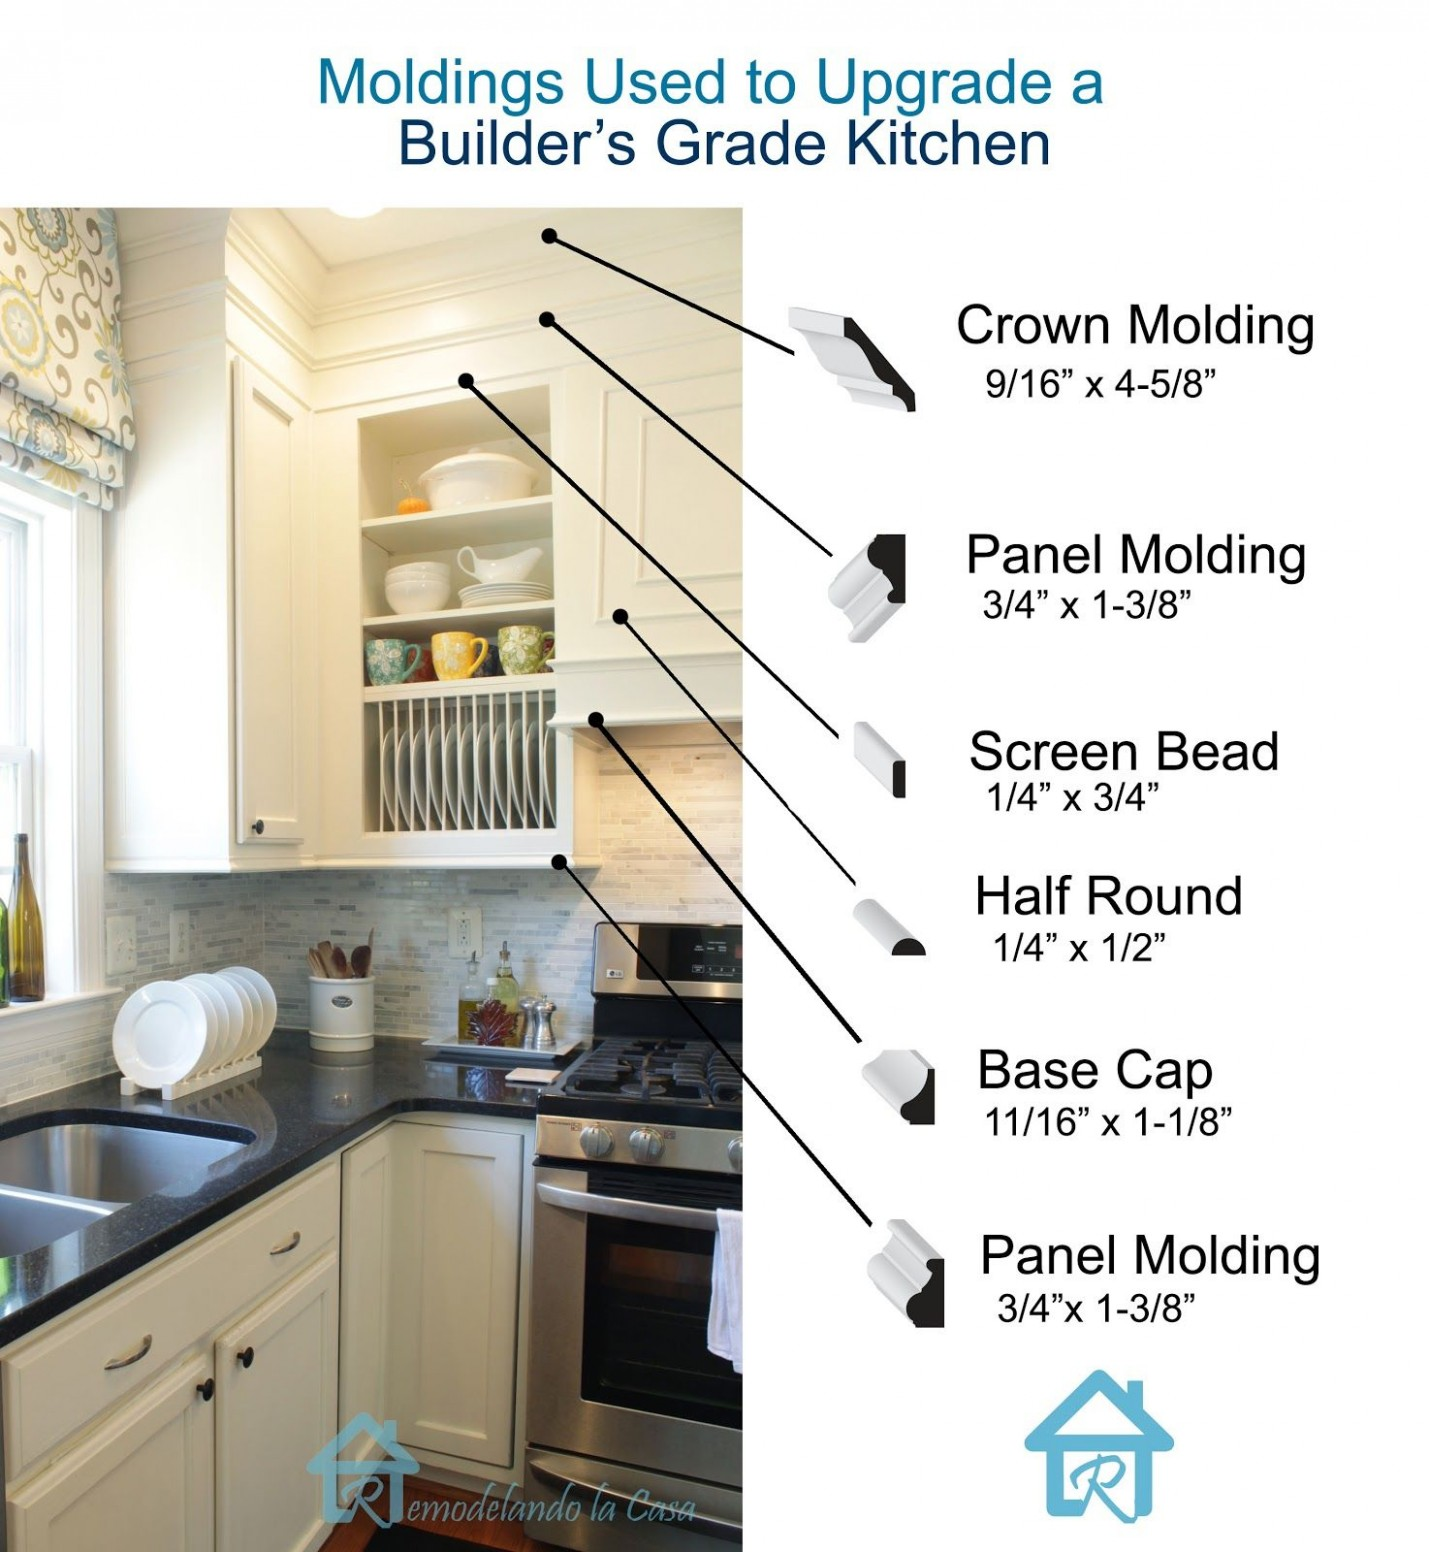 Adding Moldings to your Kitchen Cabinets  Kitchen soffit, Builder  - How To Install 2 Piece Crown Molding On Kitchen Cabinets